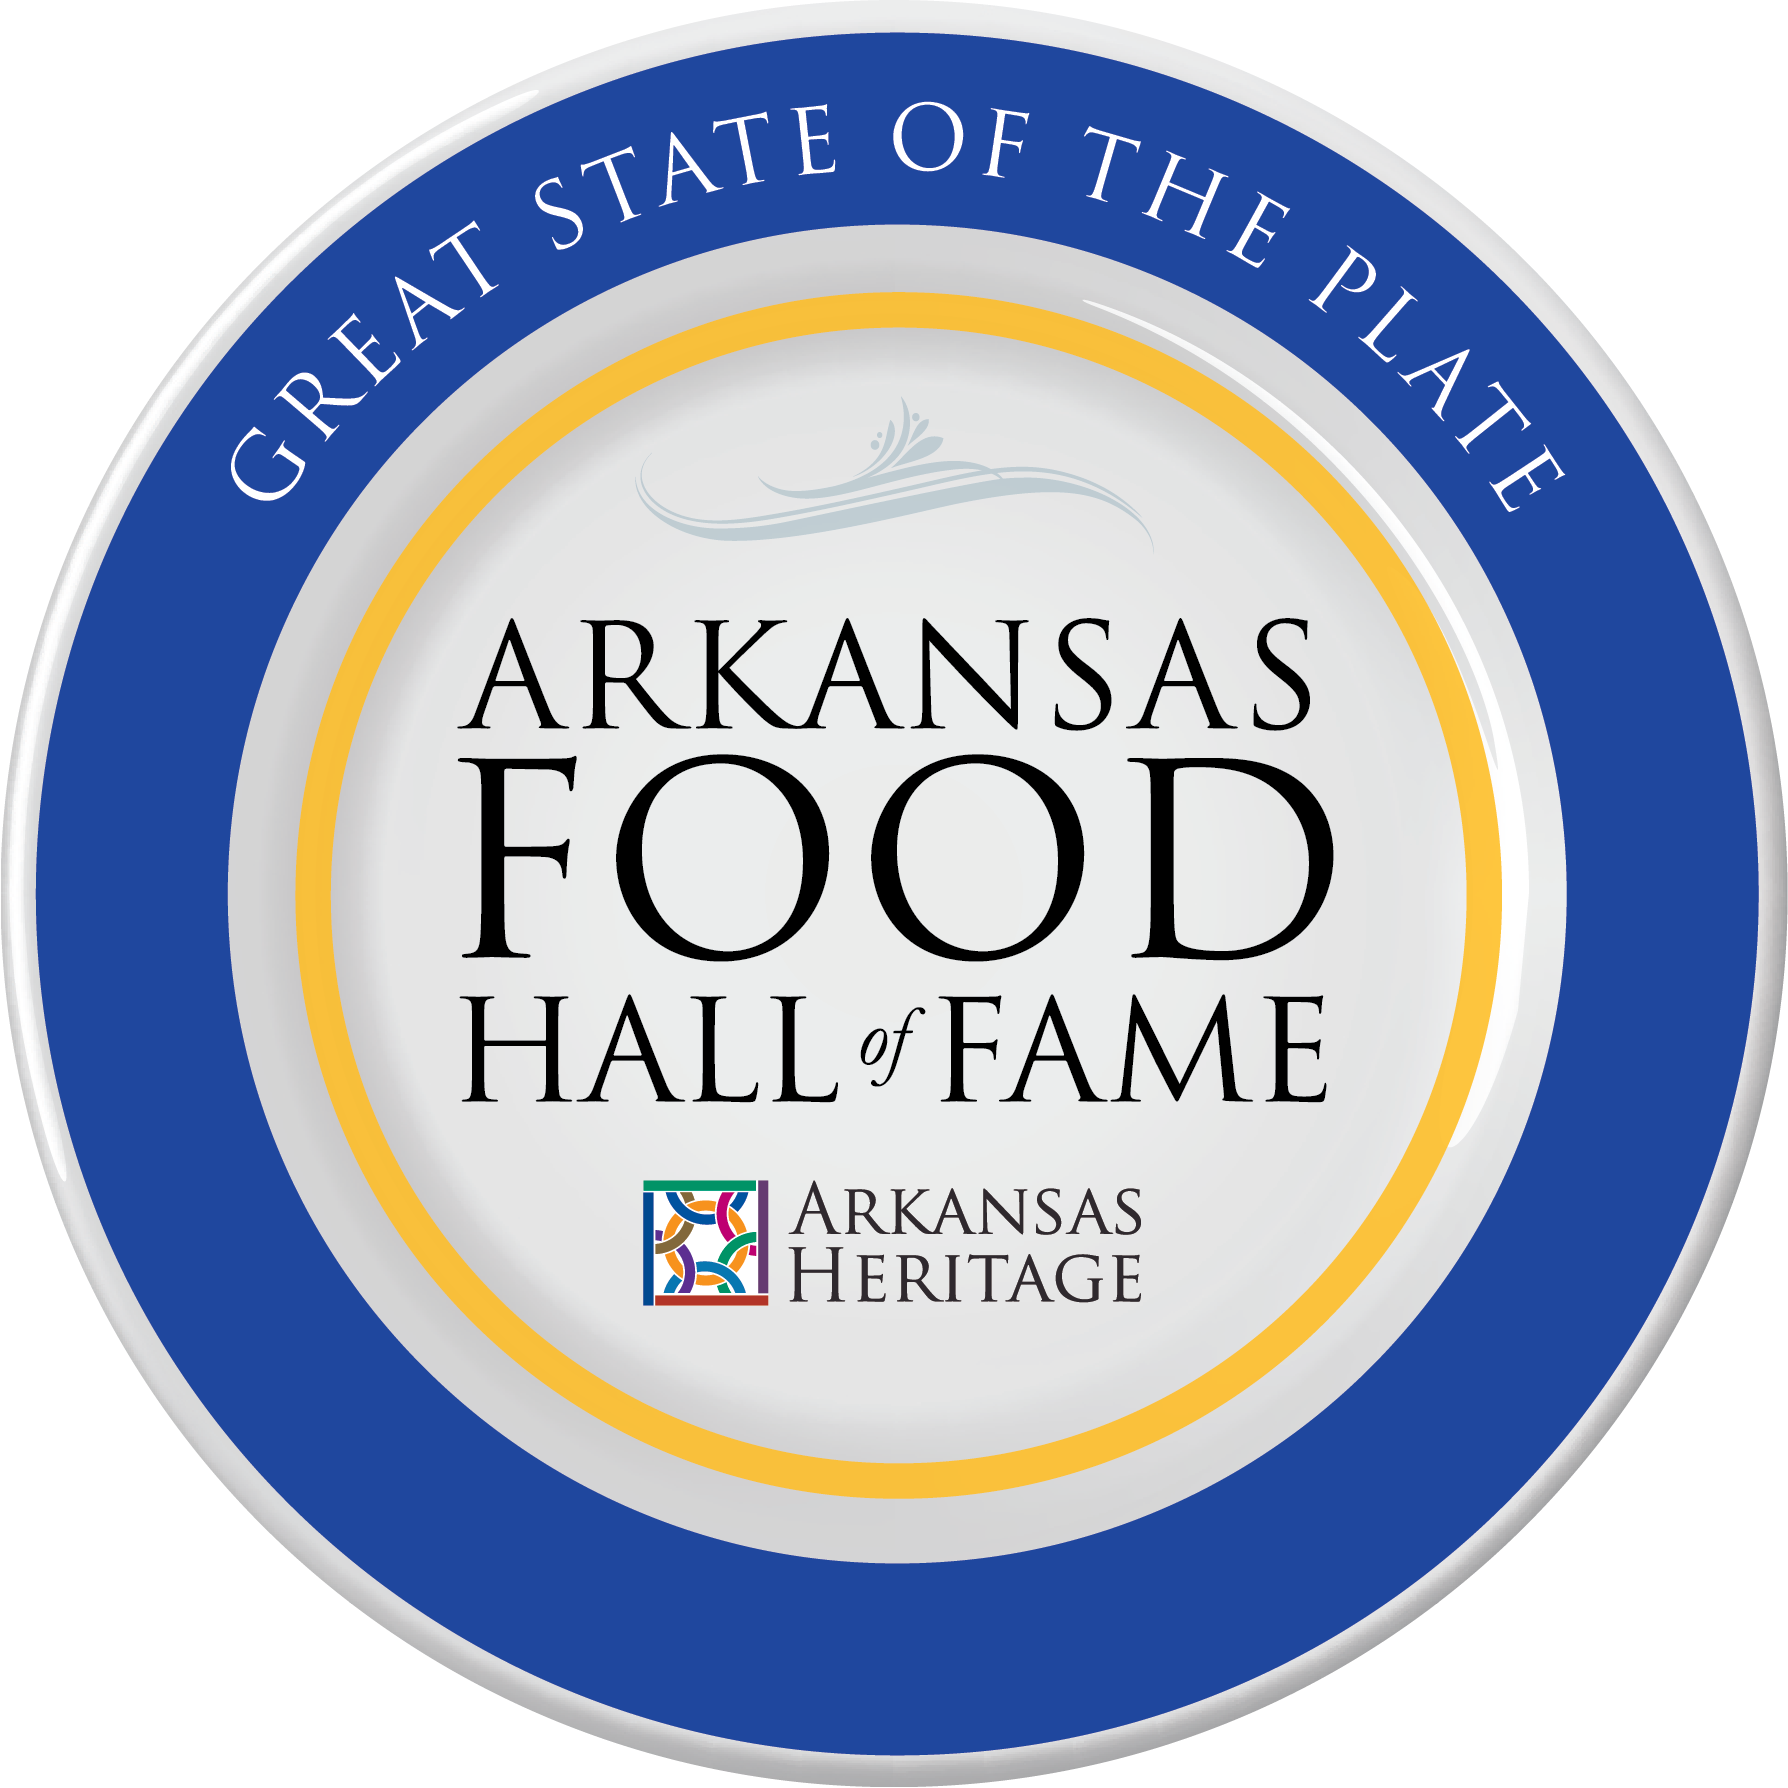 Arkansas Food Hall of Fame